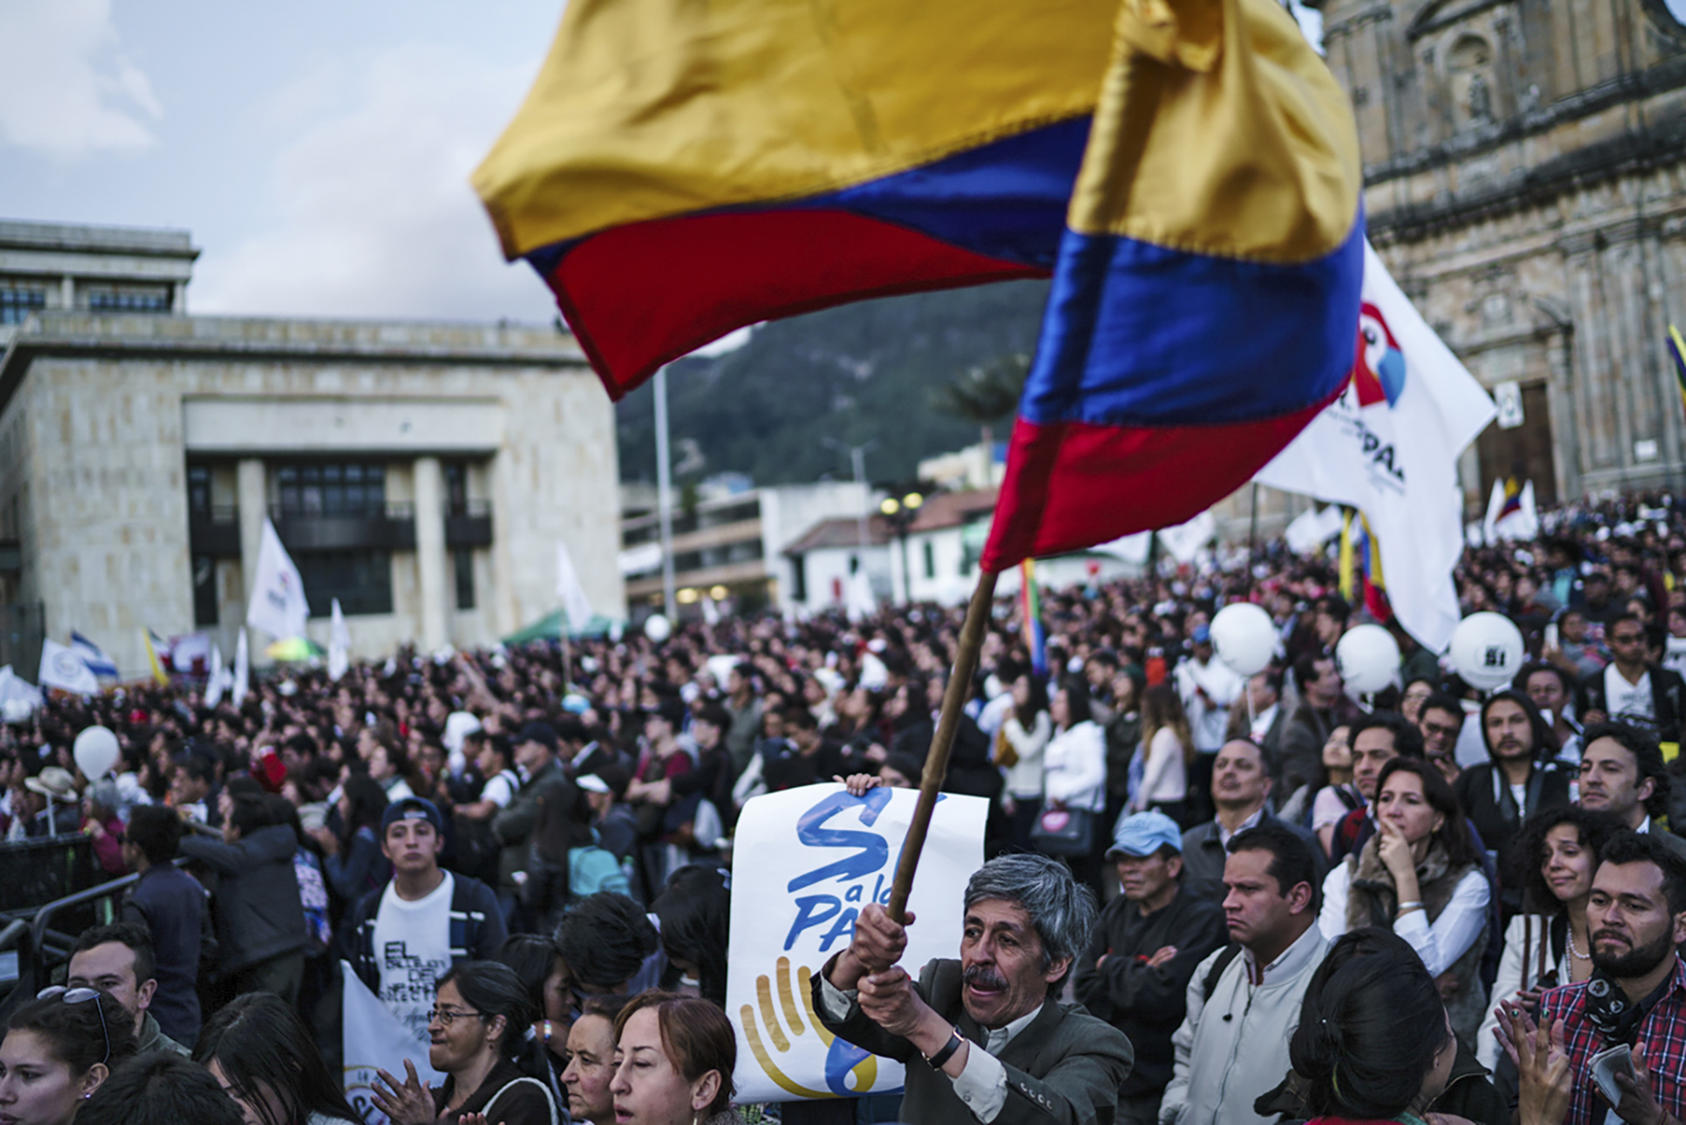 A celebration in Bolivar Square of the signing of a peace agreement between the Colombian government and the Revolutionary Armed Forces of Colombia, or FARC, in Bogota, Sept. 26, 2016. (Federico Rios Escobar/The New York Times)